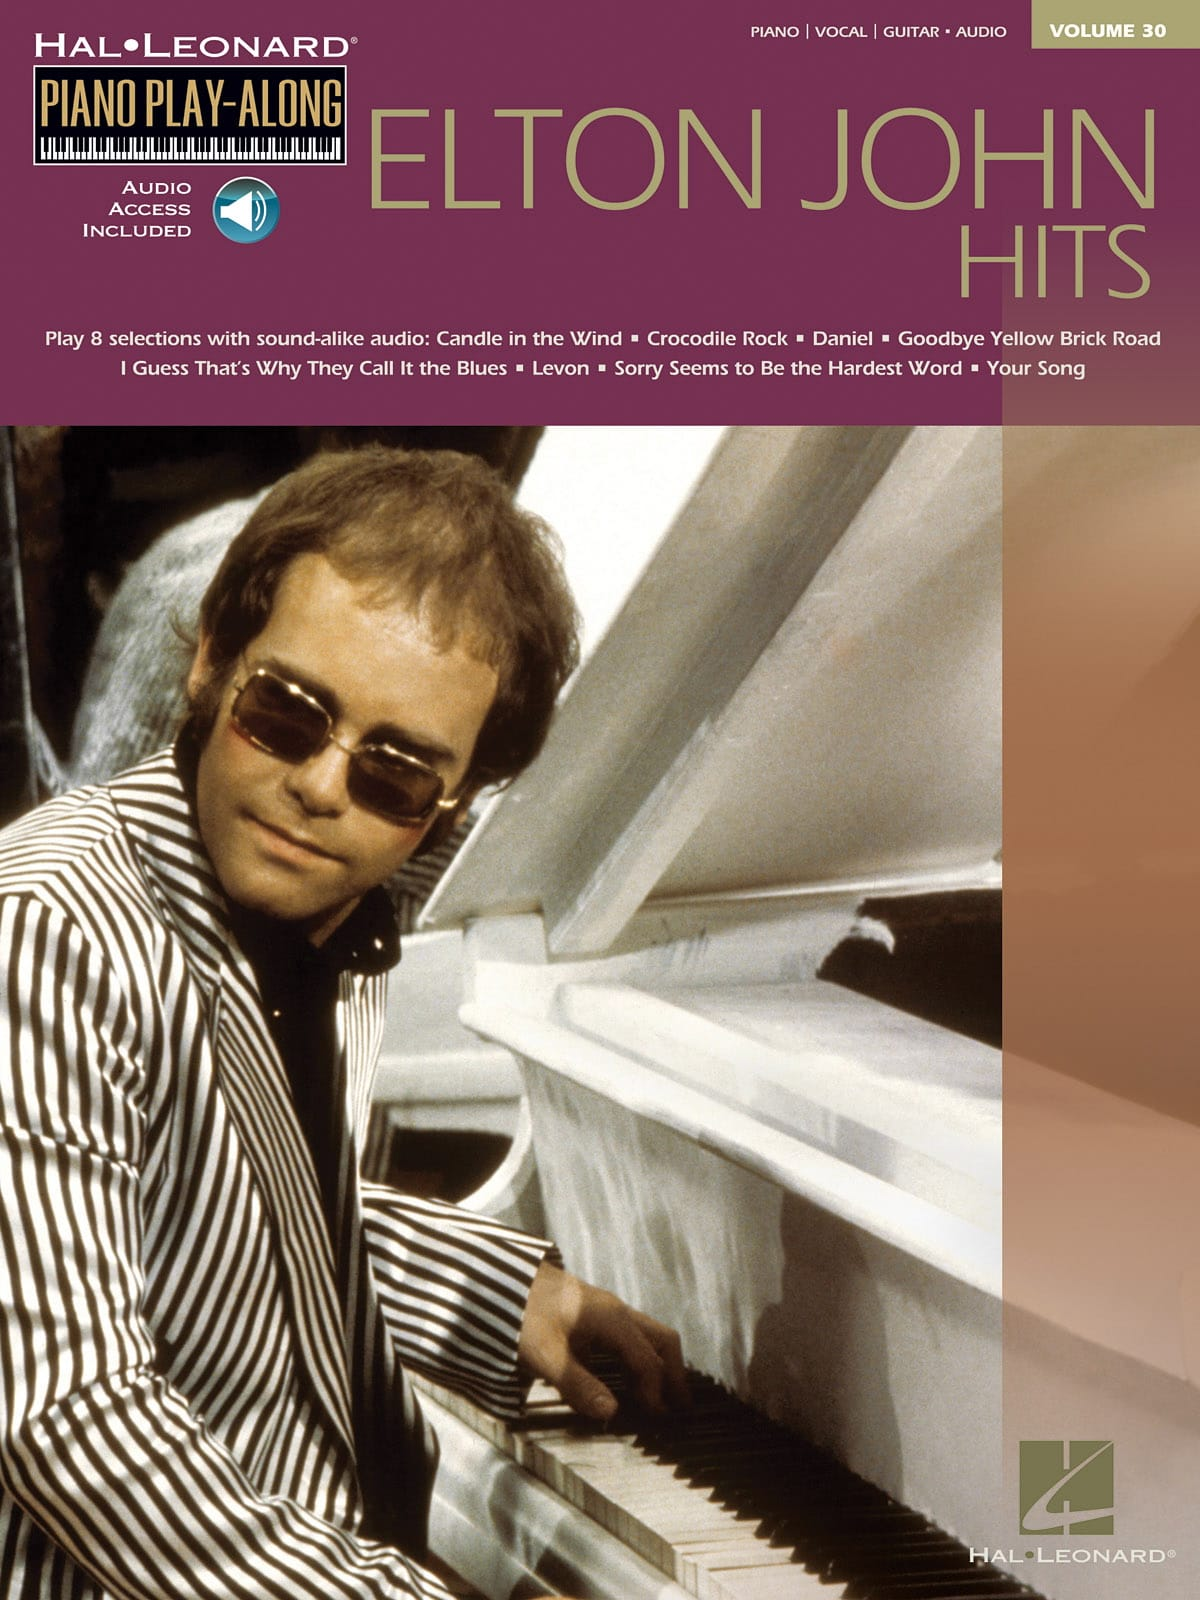 Elton John - Play-Along Piano Volume 30 - Elton John Hits - Partition - di-arezzo.it